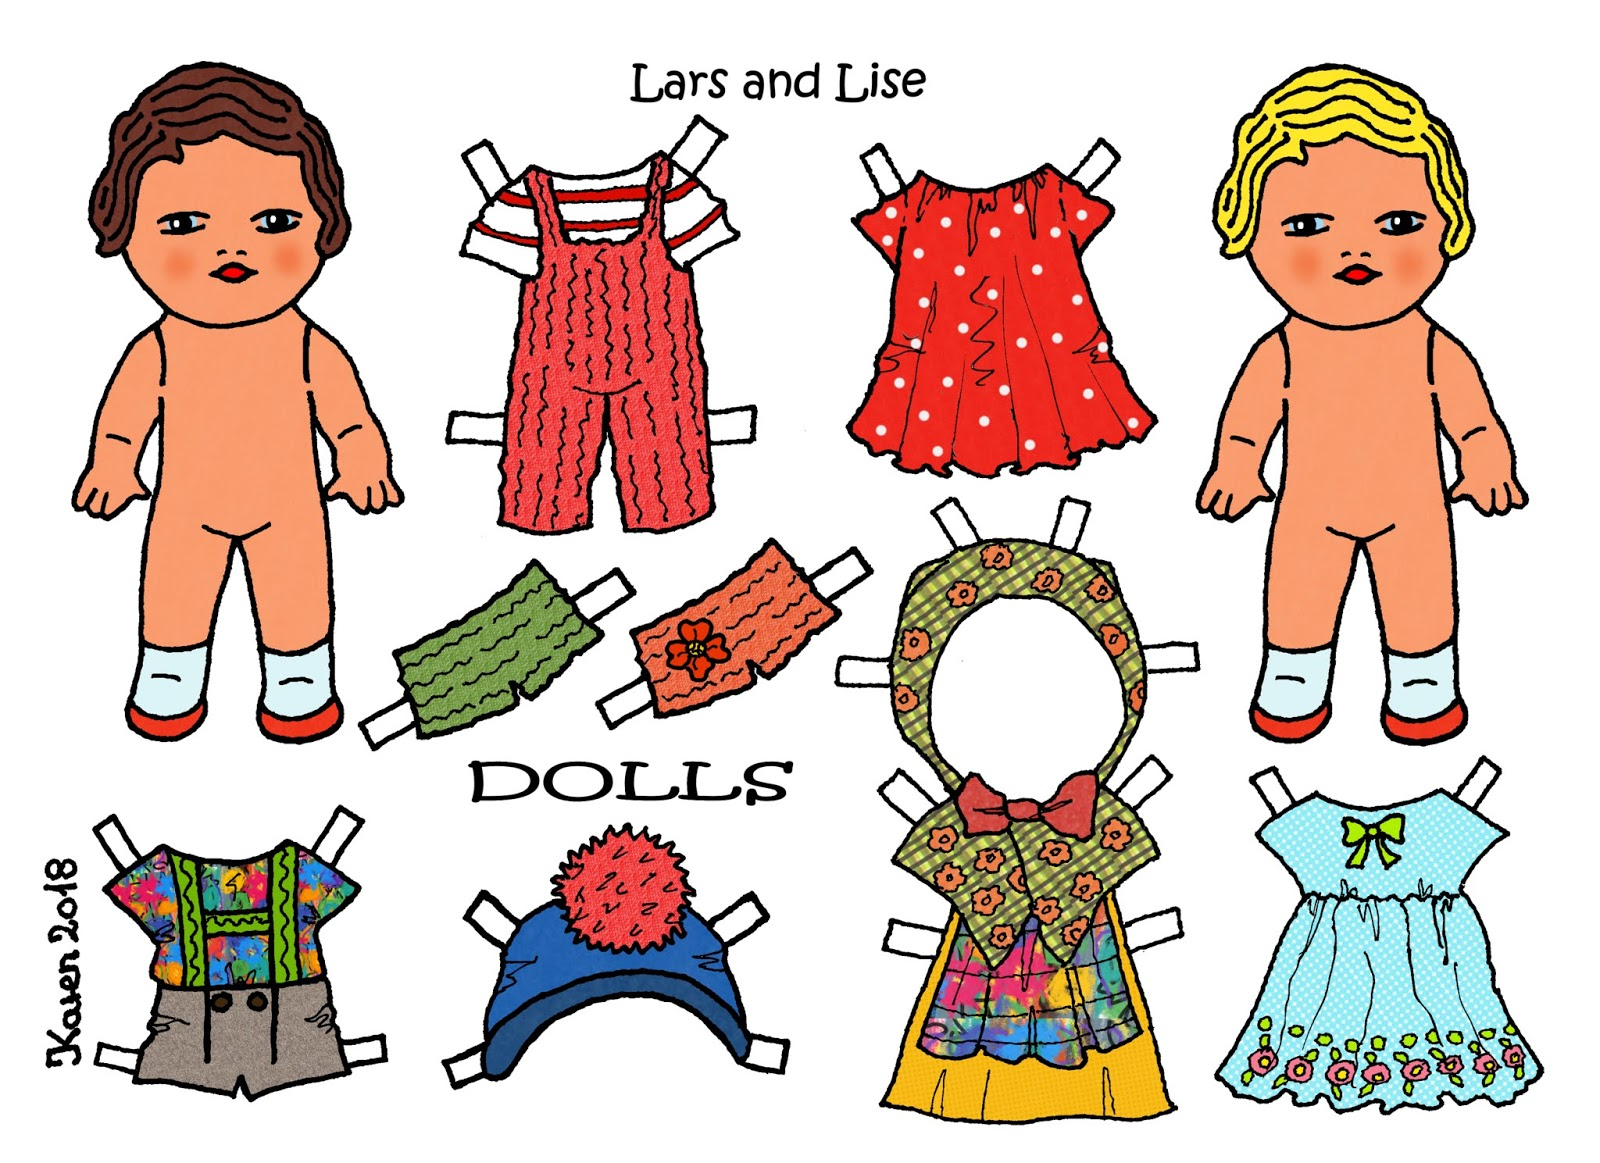 Link to Lars and Lise Paper Dolls.